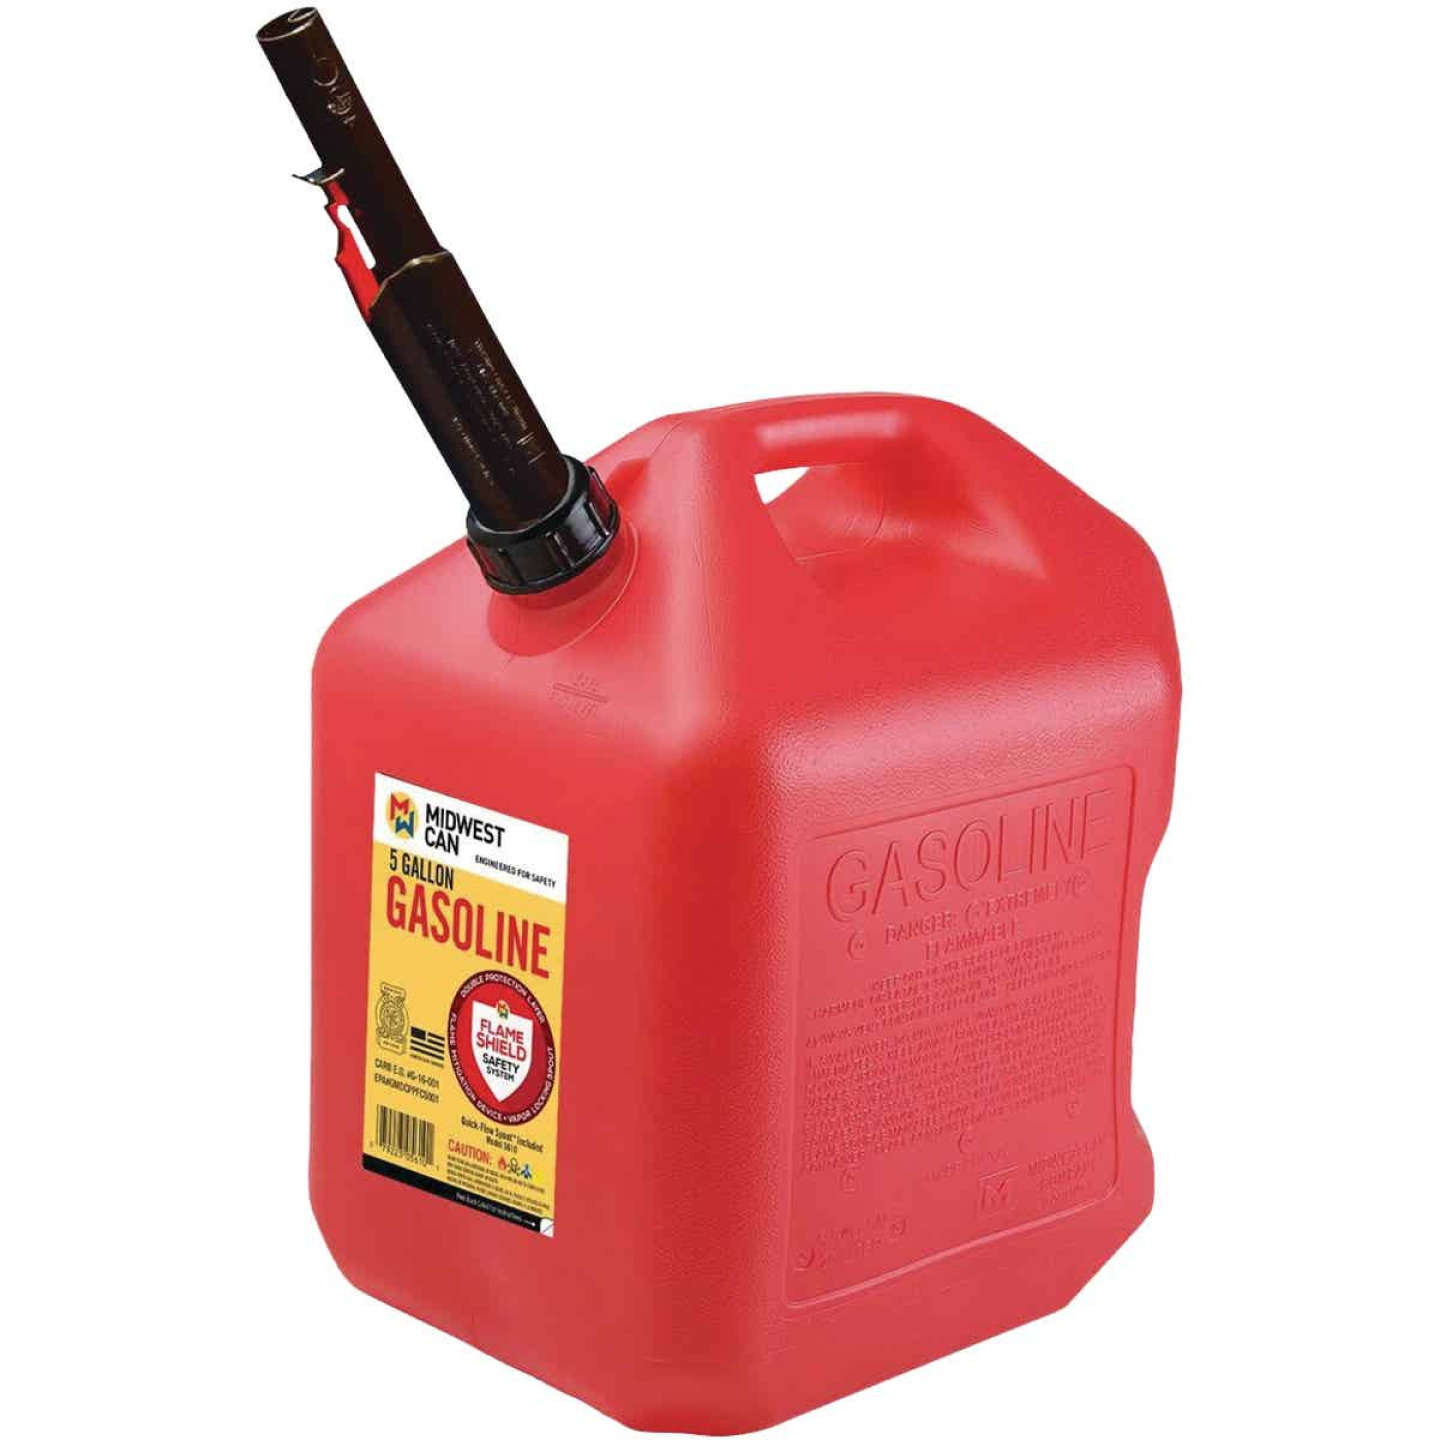 Midwest Can 5 Gal. Plastic Auto Shut Off Gasoline Fuel Can, Red Image 1